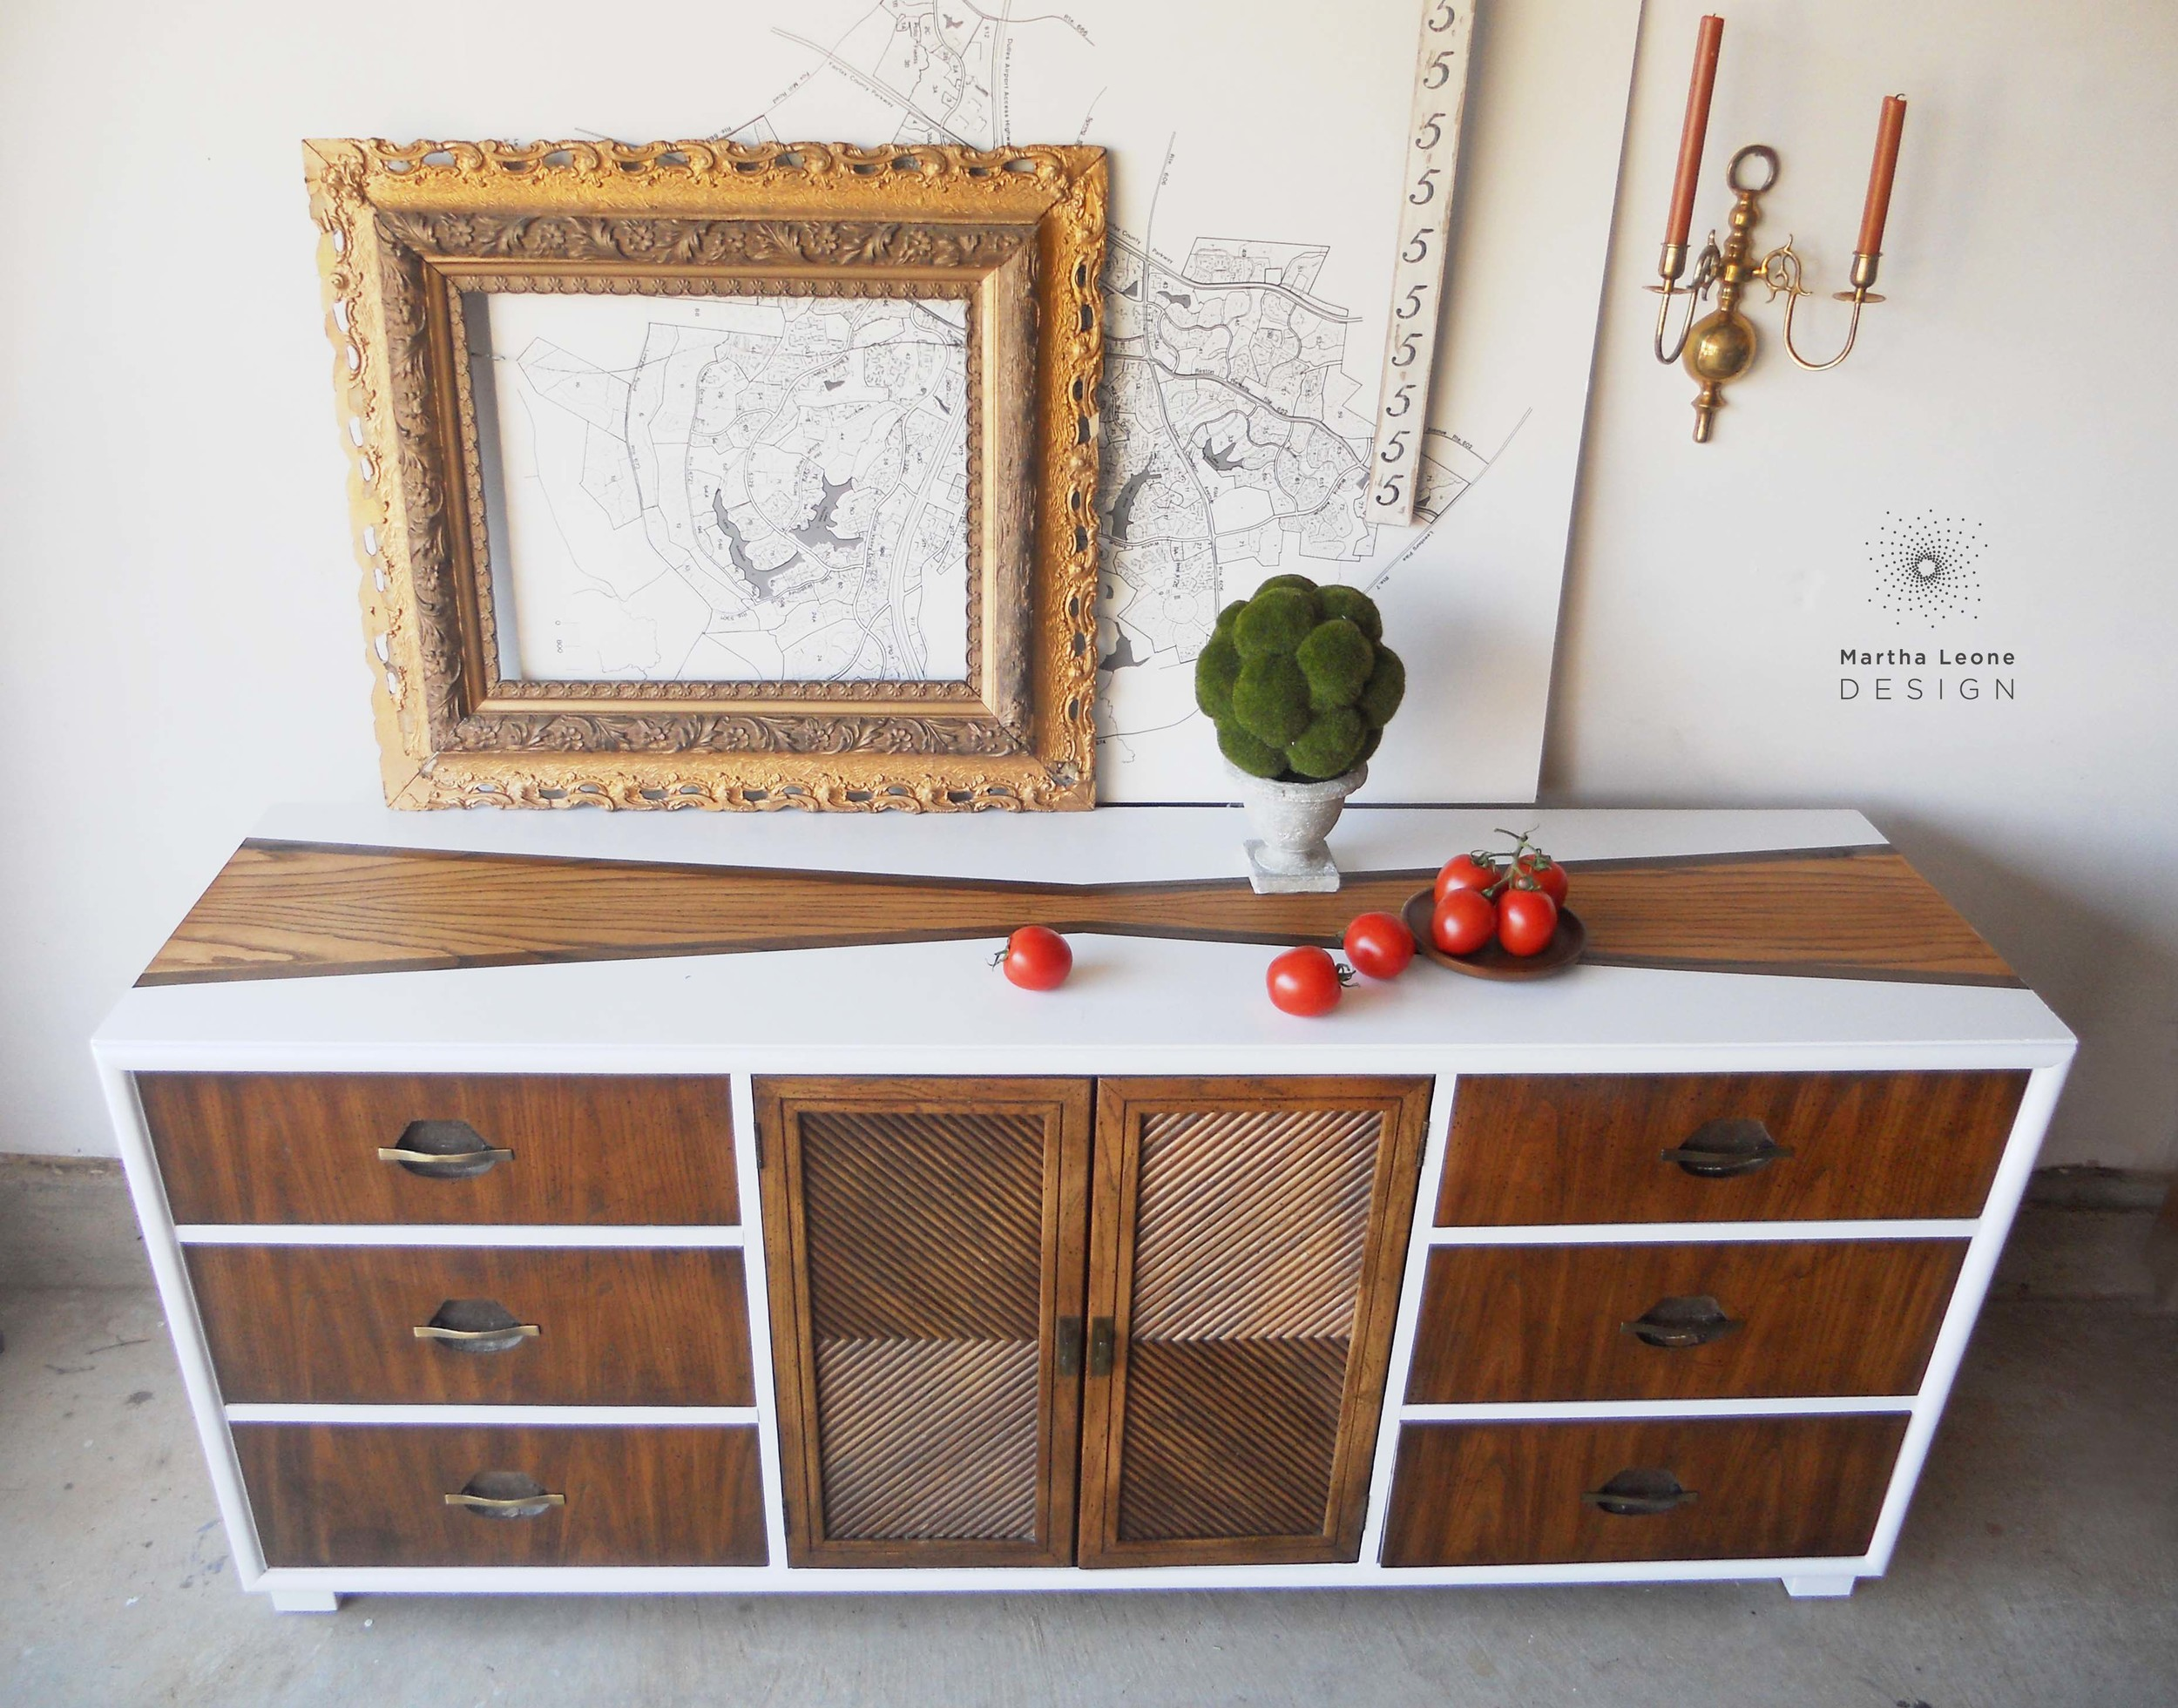 A mid century dresser in Benjamin Moore Super White